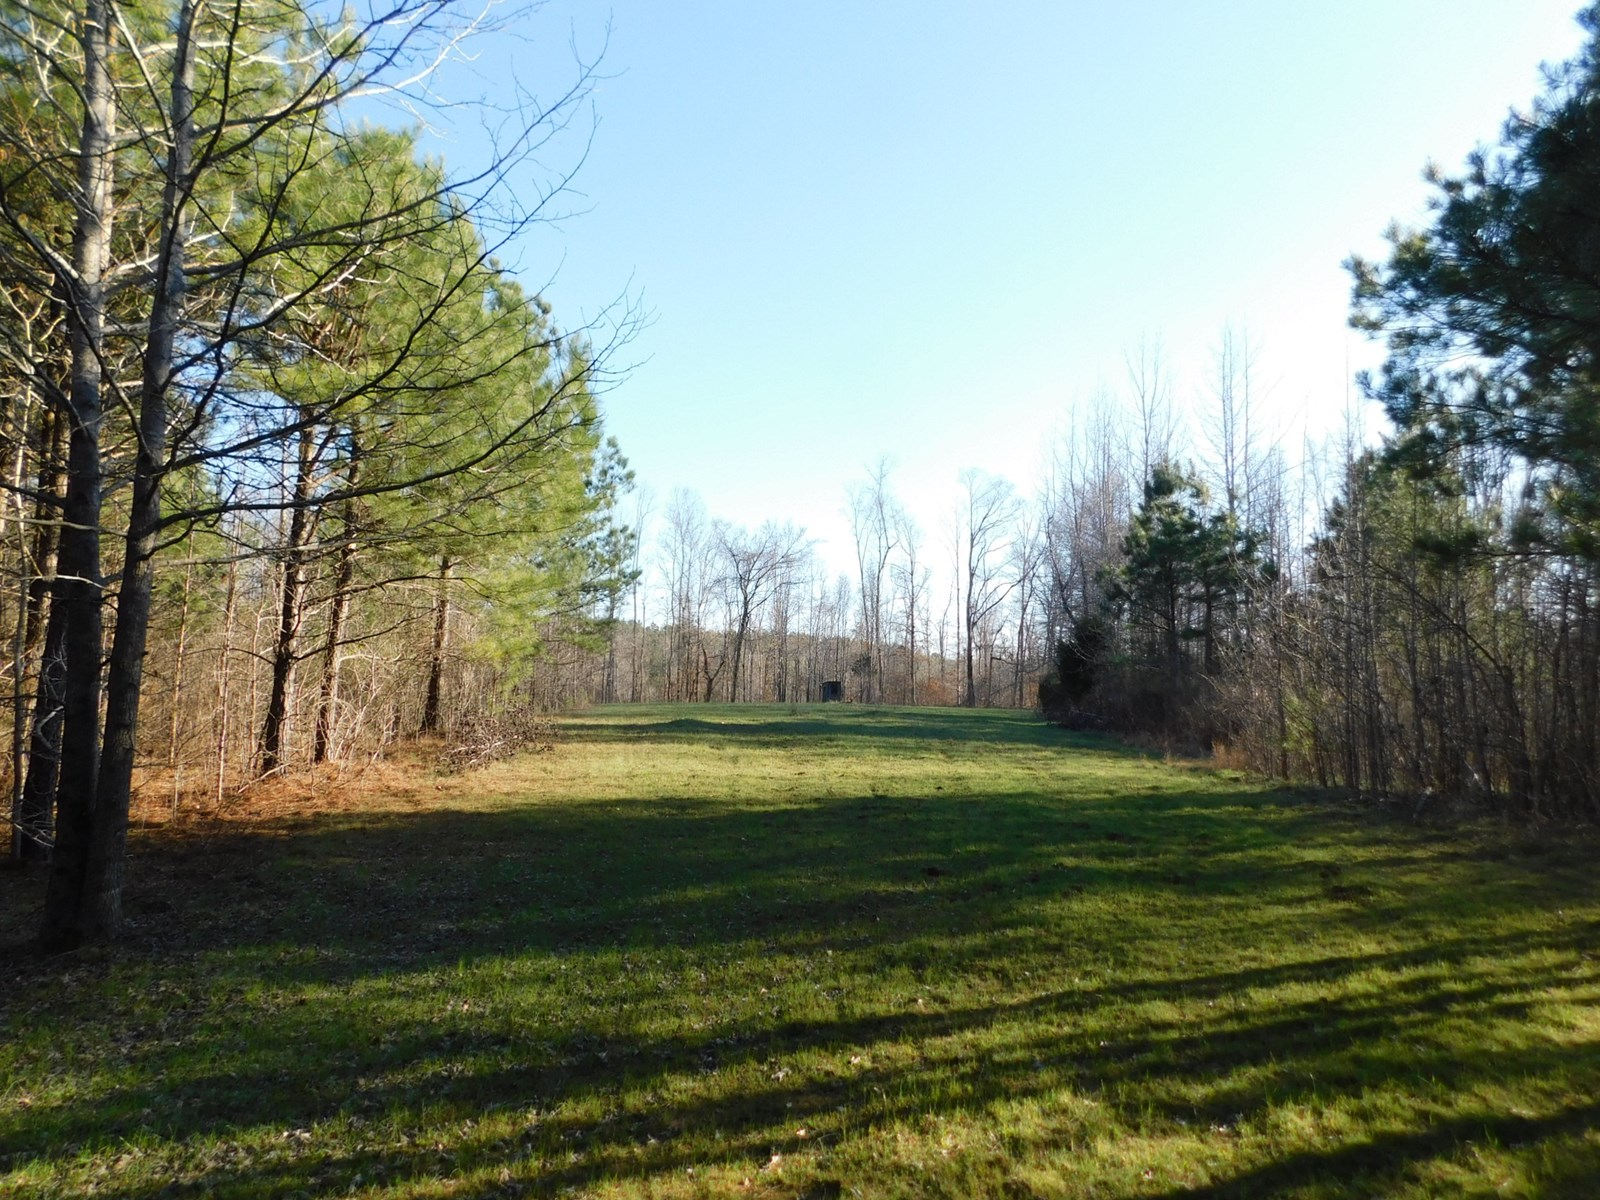 TENNESSEE LAND FOR SALE , ROW CROP FARM LAND, STREAM